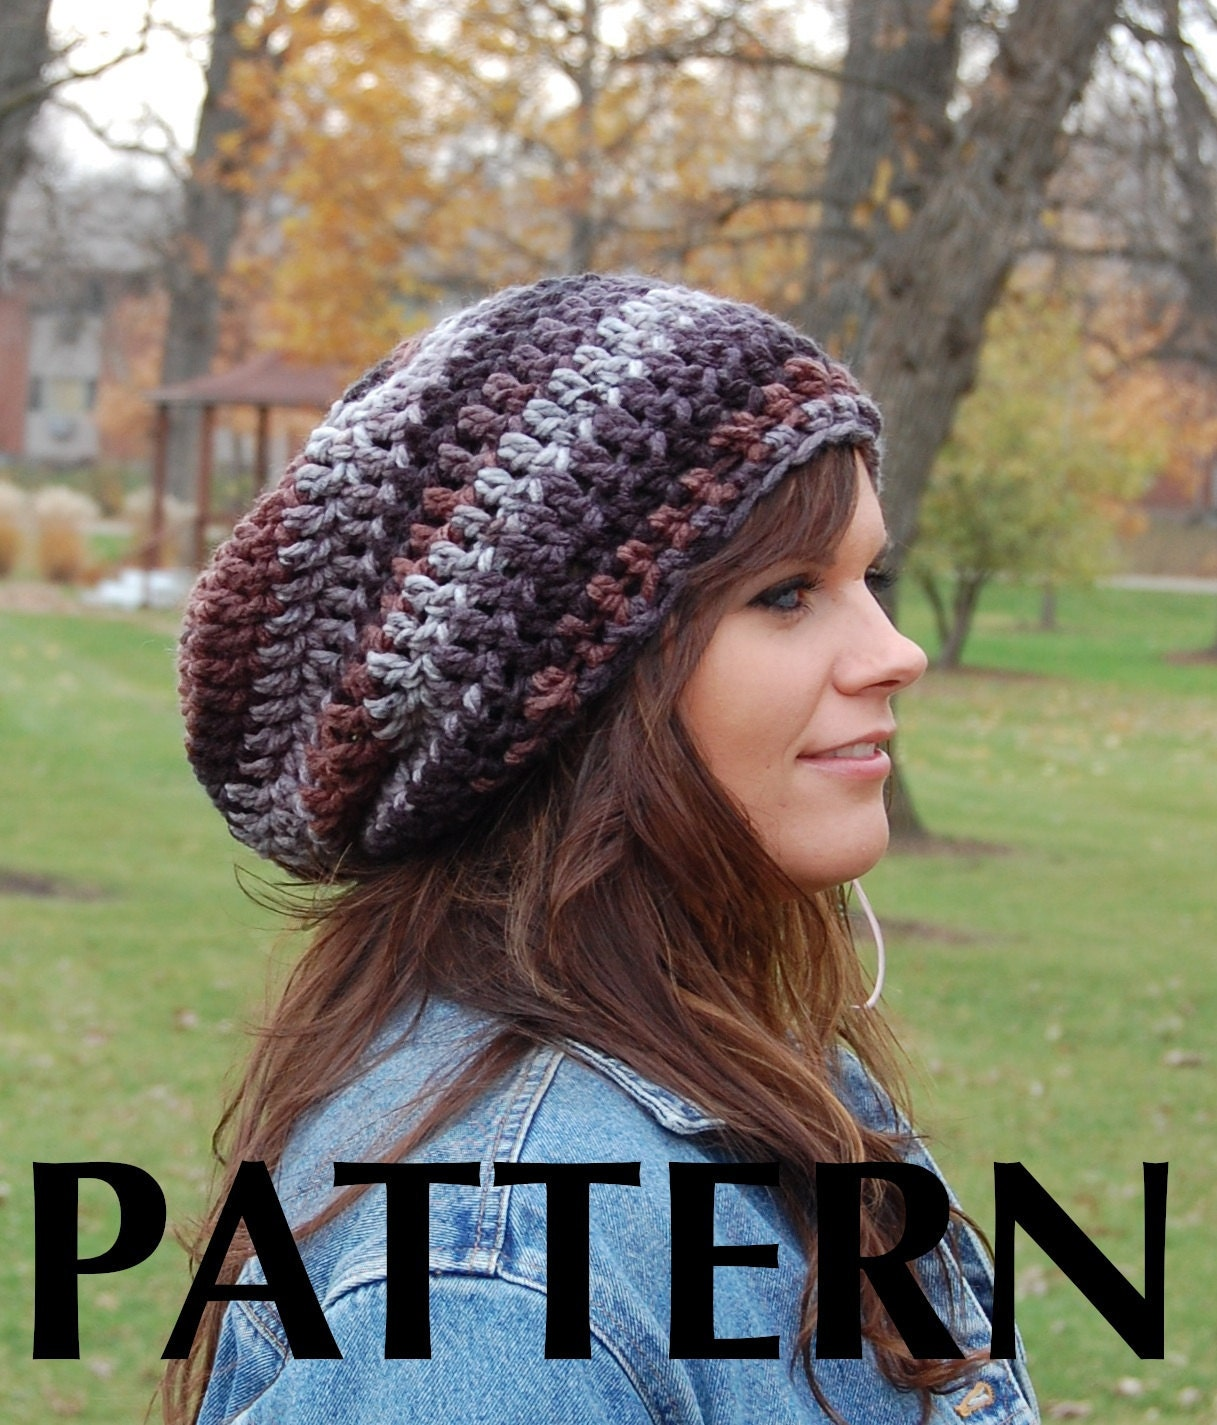 Free Patterns Crochet For Hats : CROCHETED BEANIE HAT PATTERN Crochet Projects